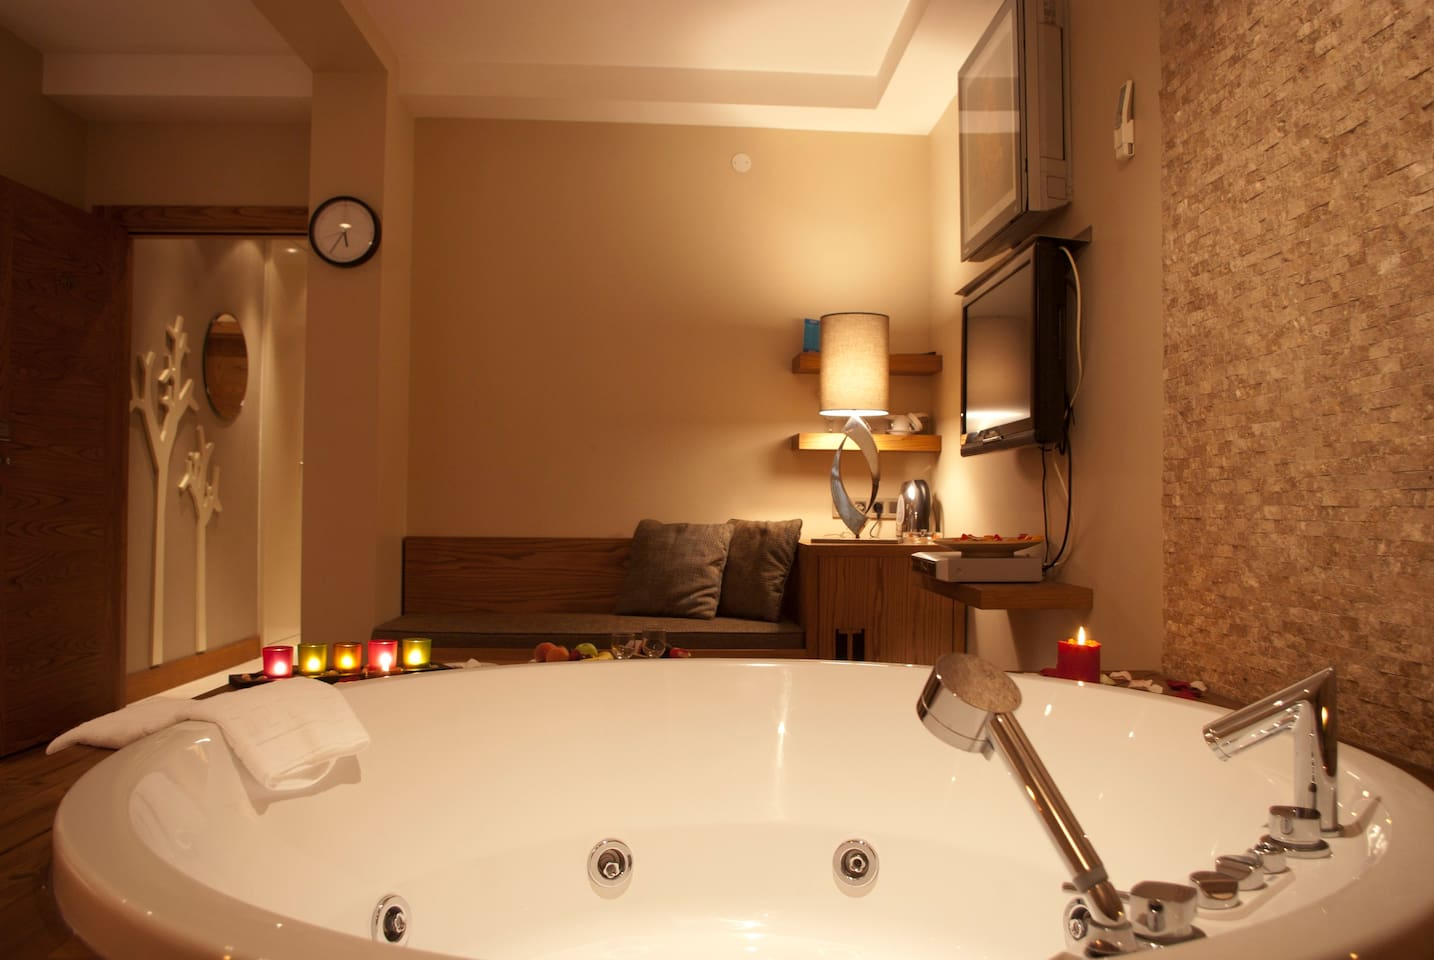 JACUZZI ROOM IN TAKSİM - Boutique hotels for Rent in Beyoğlu ...